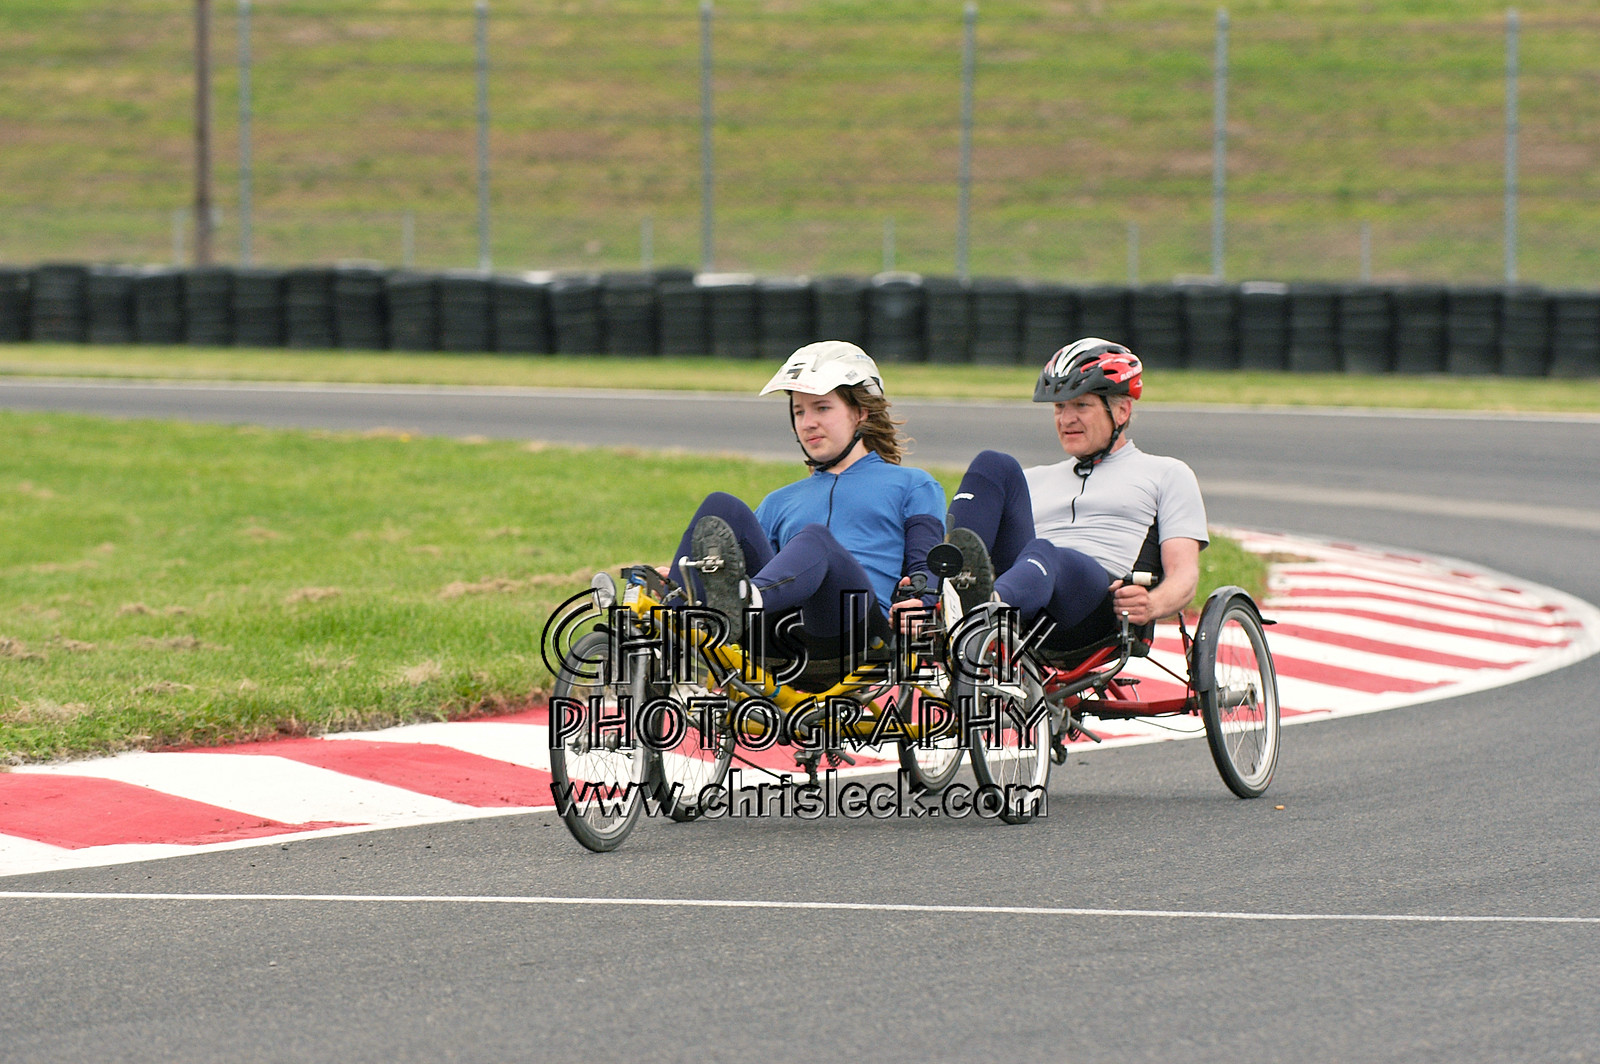 Alex and Keith Kohan. Road race, unfaired divisions. Oregon Human Powered Vehicles 6th Annual Human Power Challenge, May 29, 2005, Portland International Raceway.